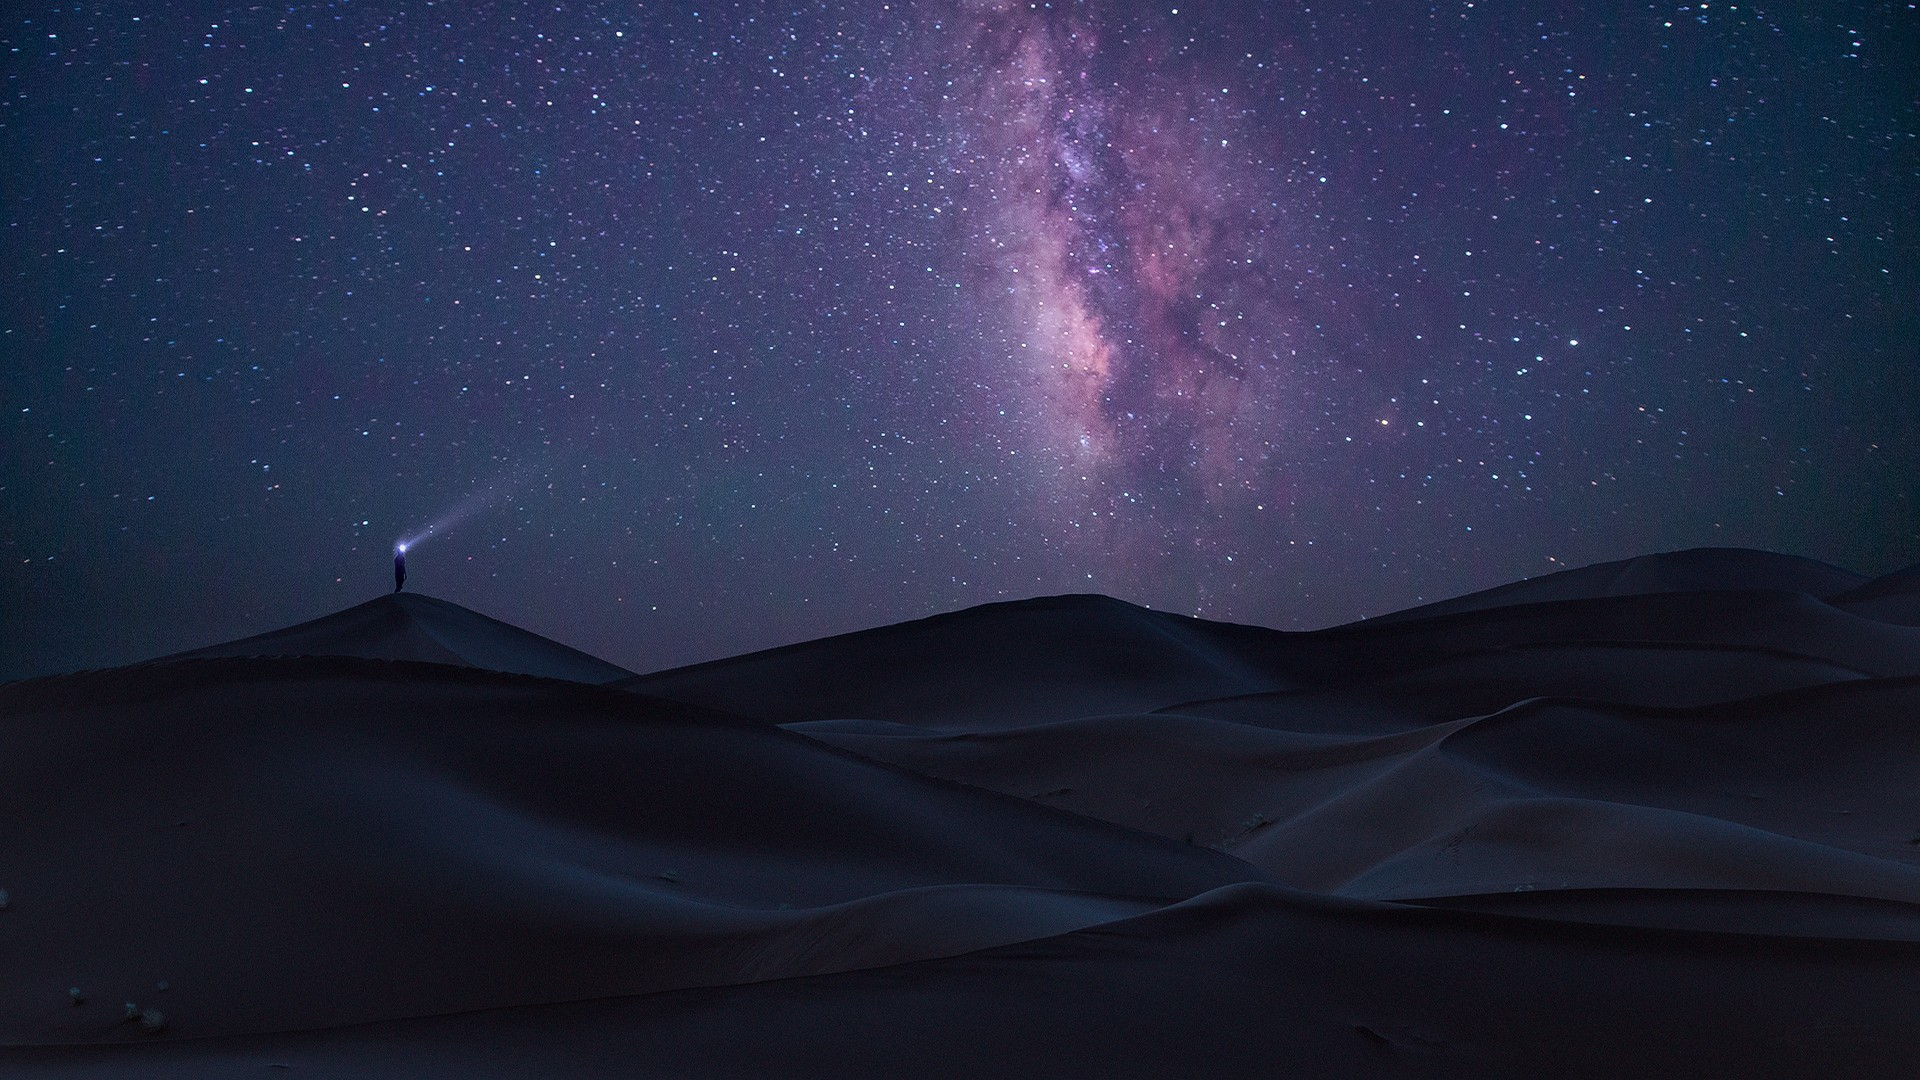 General 1920x1080 nature landscape long exposure desert Sahara Milky Way starry night space purple